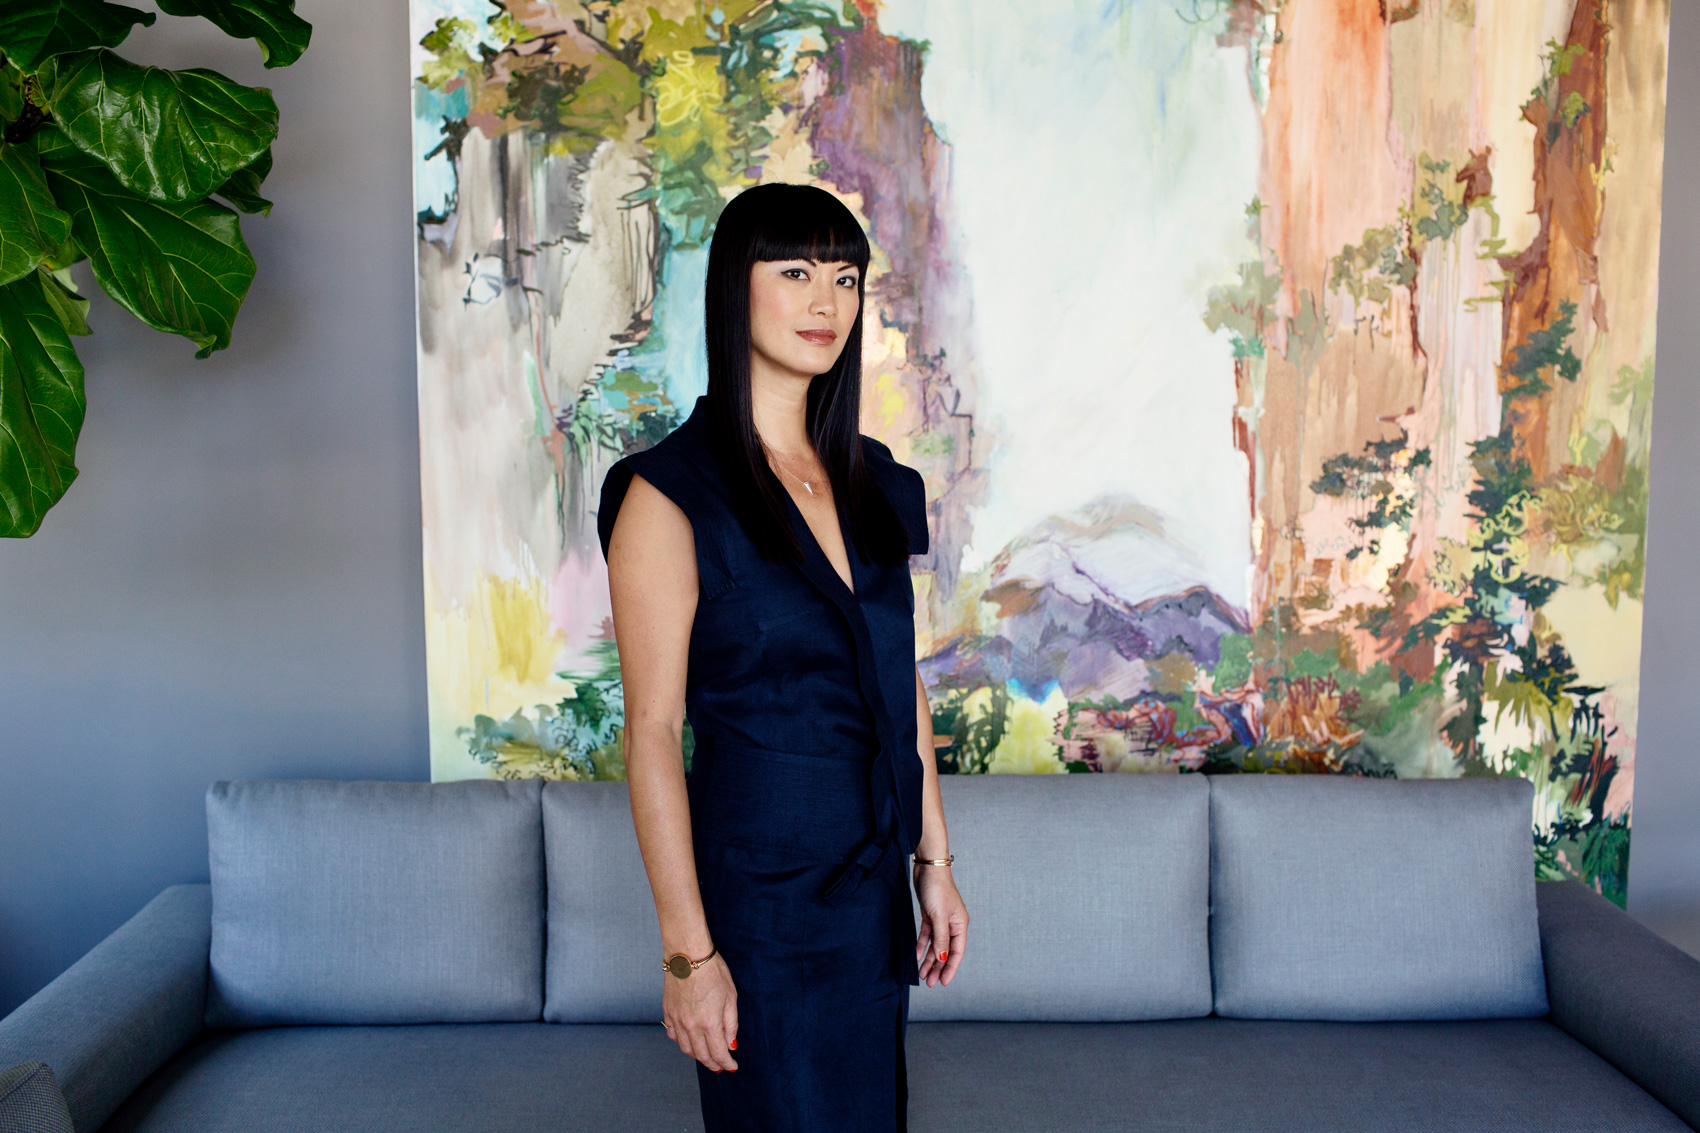 Woman wearing a blue dress in a living room. Kim Genevieve Los Angeles Portrait Photographer